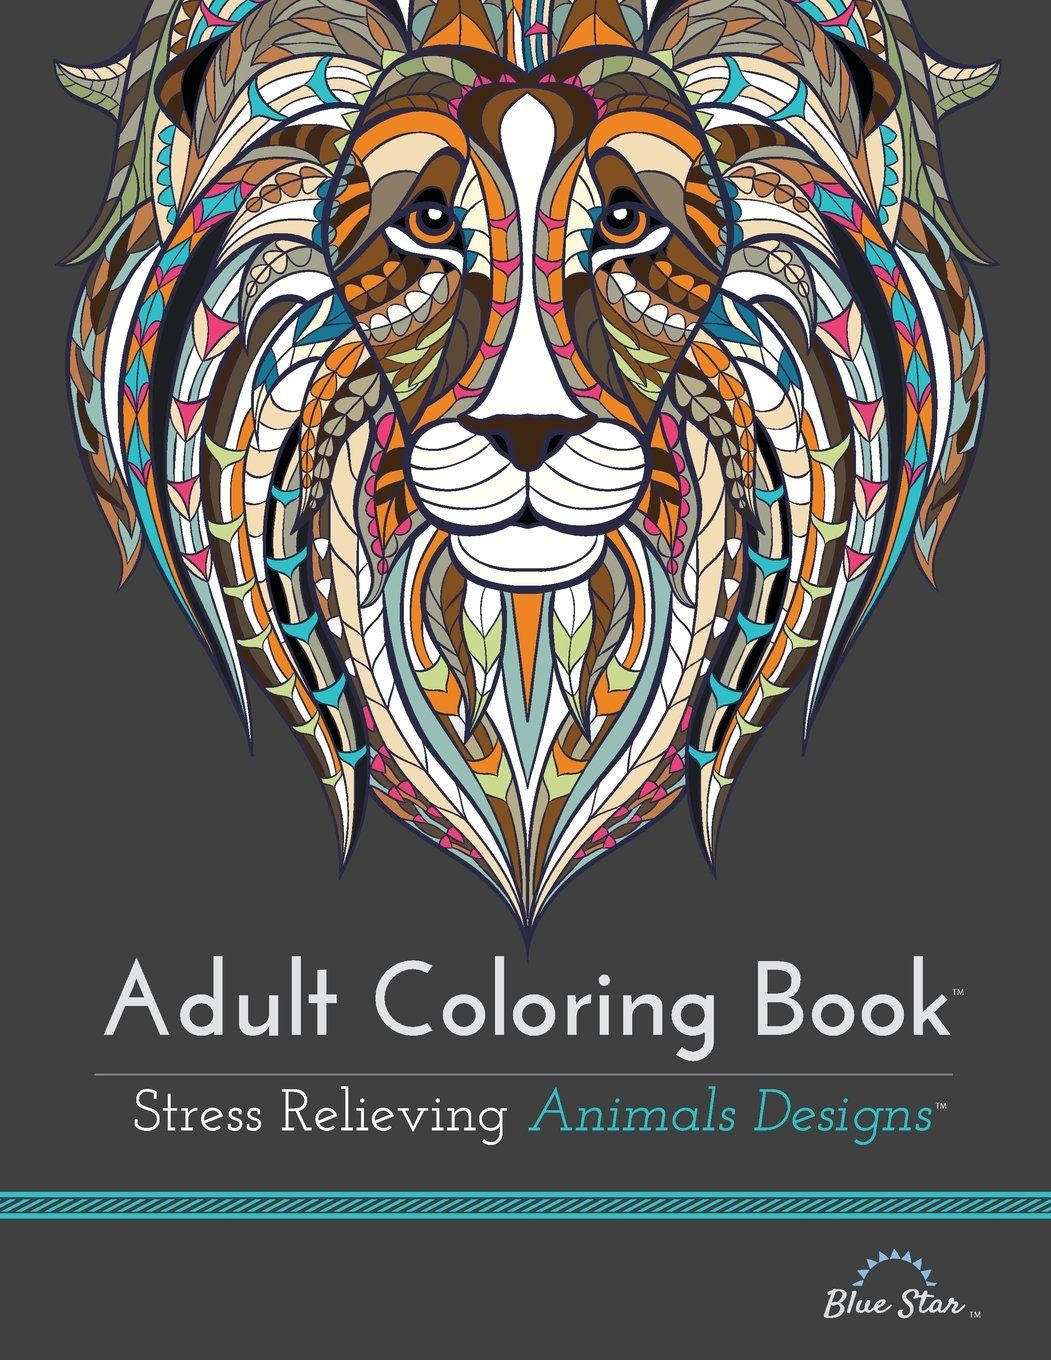 Adult Coloring Book: Stress Relieving Animal Designs: Blue Star Coloring: 9781941325117: Amazon.com: Books